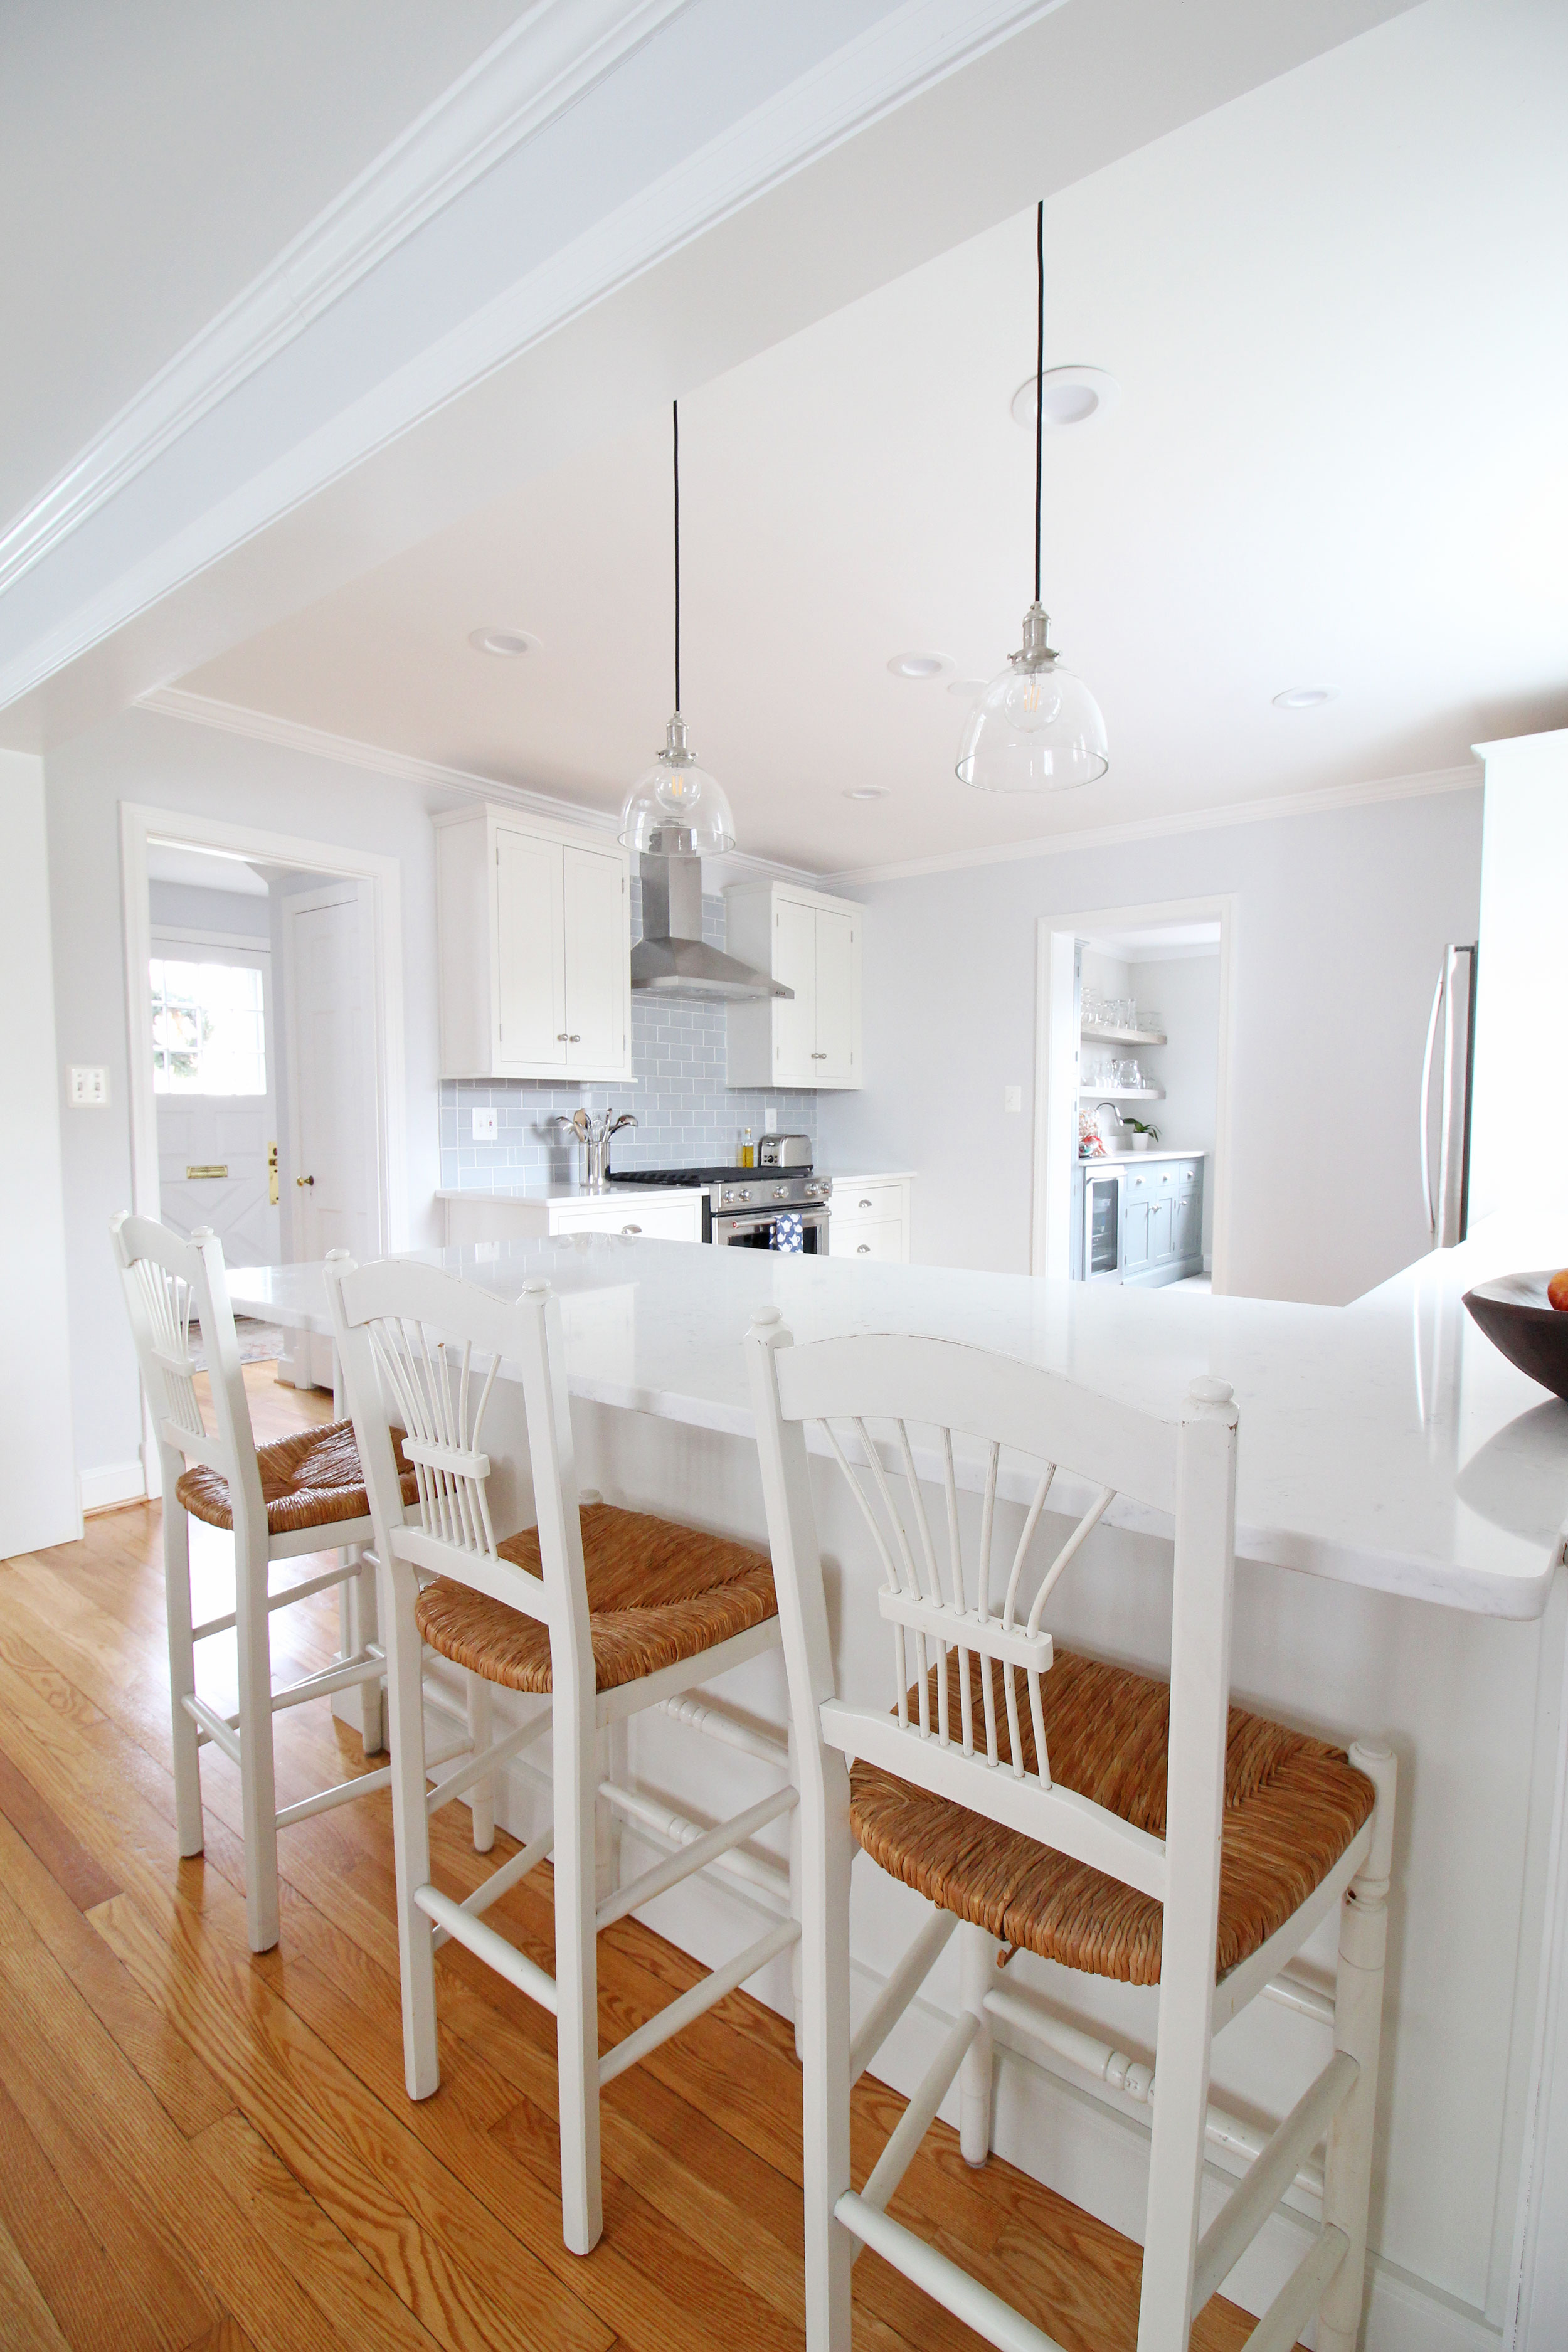 A stunning transitional farmhouse style white kitchen with inset cabinets opens up to the living room in this Virginia home. A peninsula provides great seating and a casual alternative to eating in the dining room. You won't believe what this looked like before!